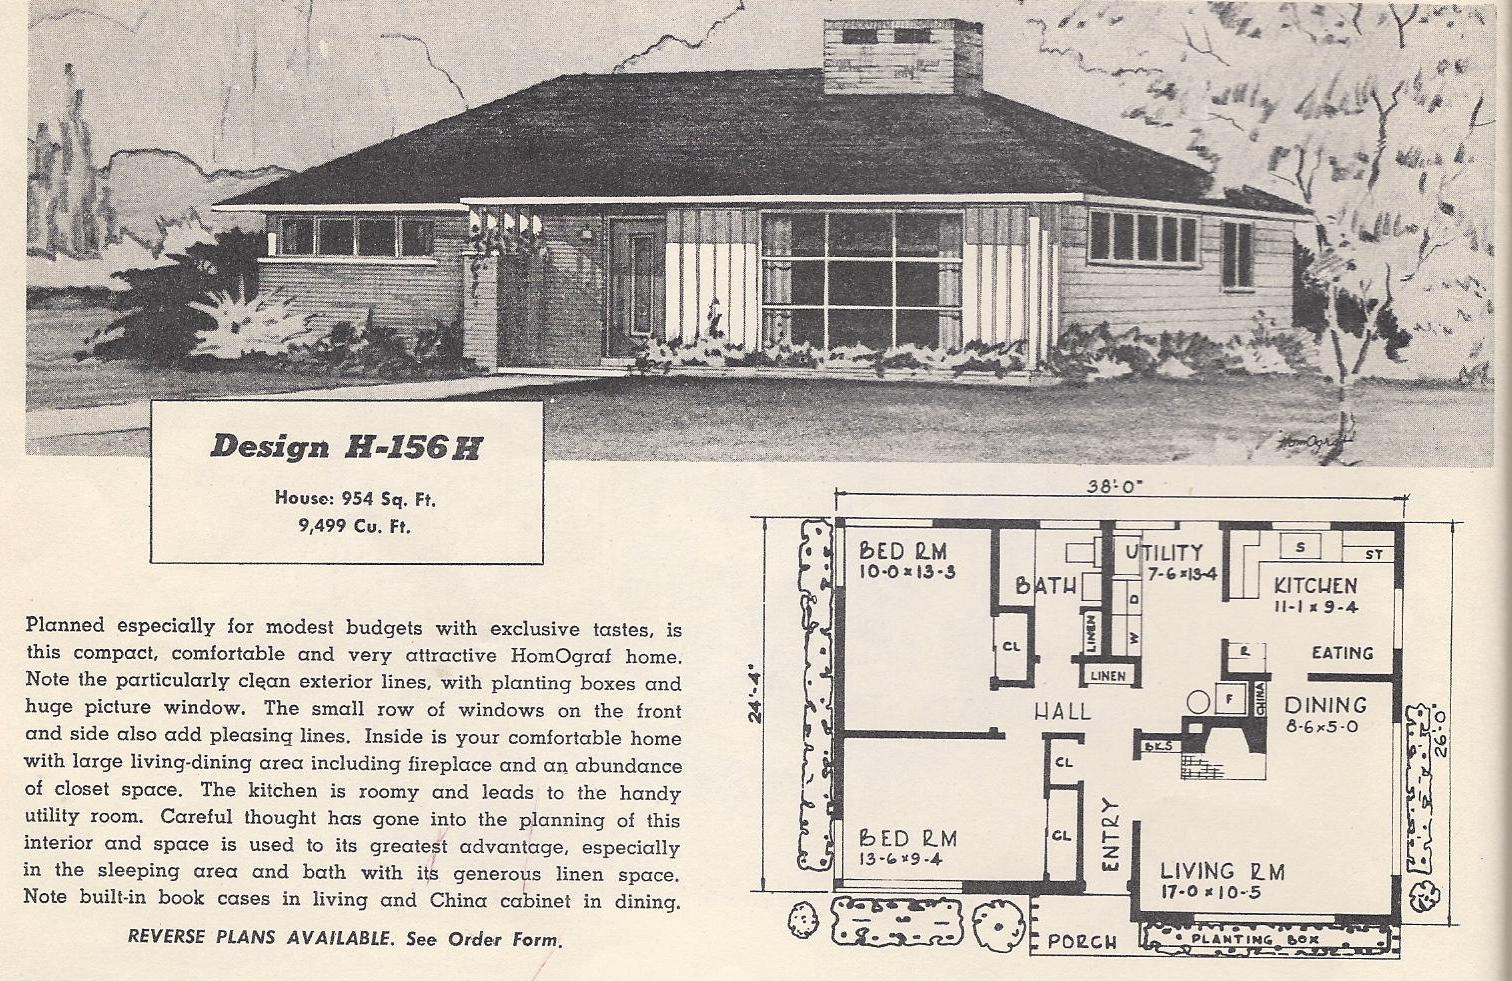 Vintage house plans 156h antique alter ego - Retro home design ...